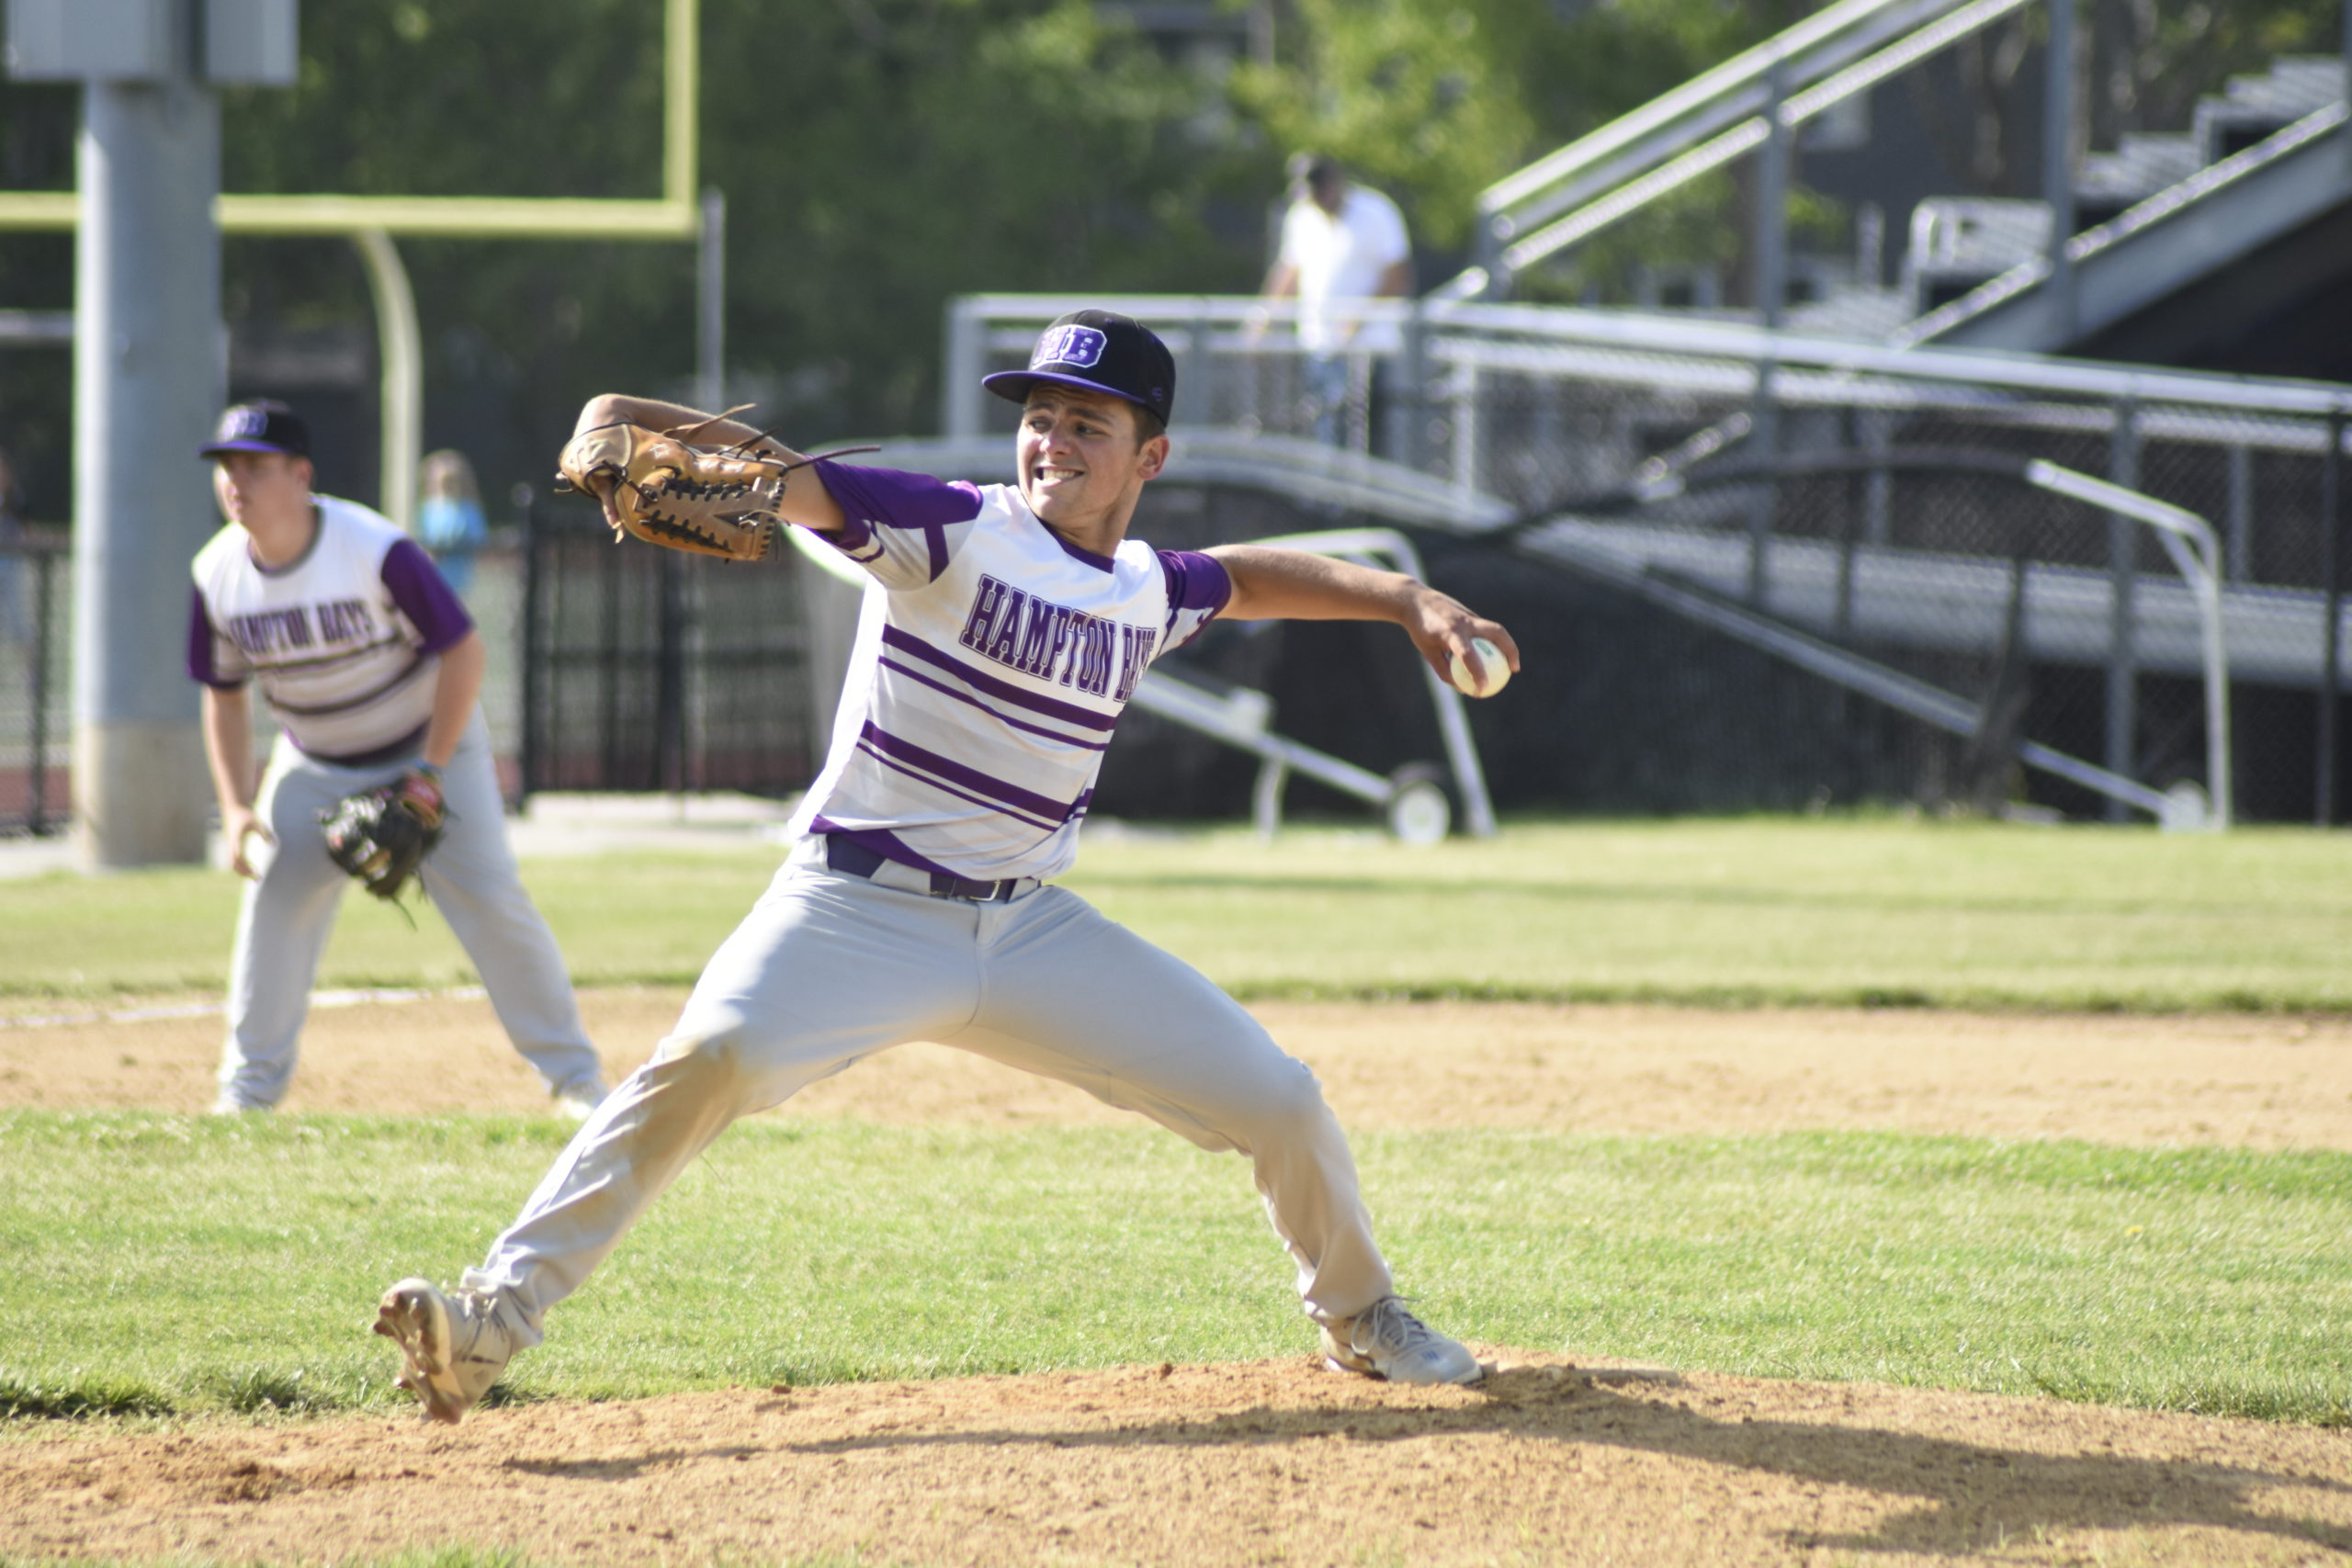 Hampton Bays senior Jordan Adelson delivers a pitch to the plate during Friday's blowout victory.